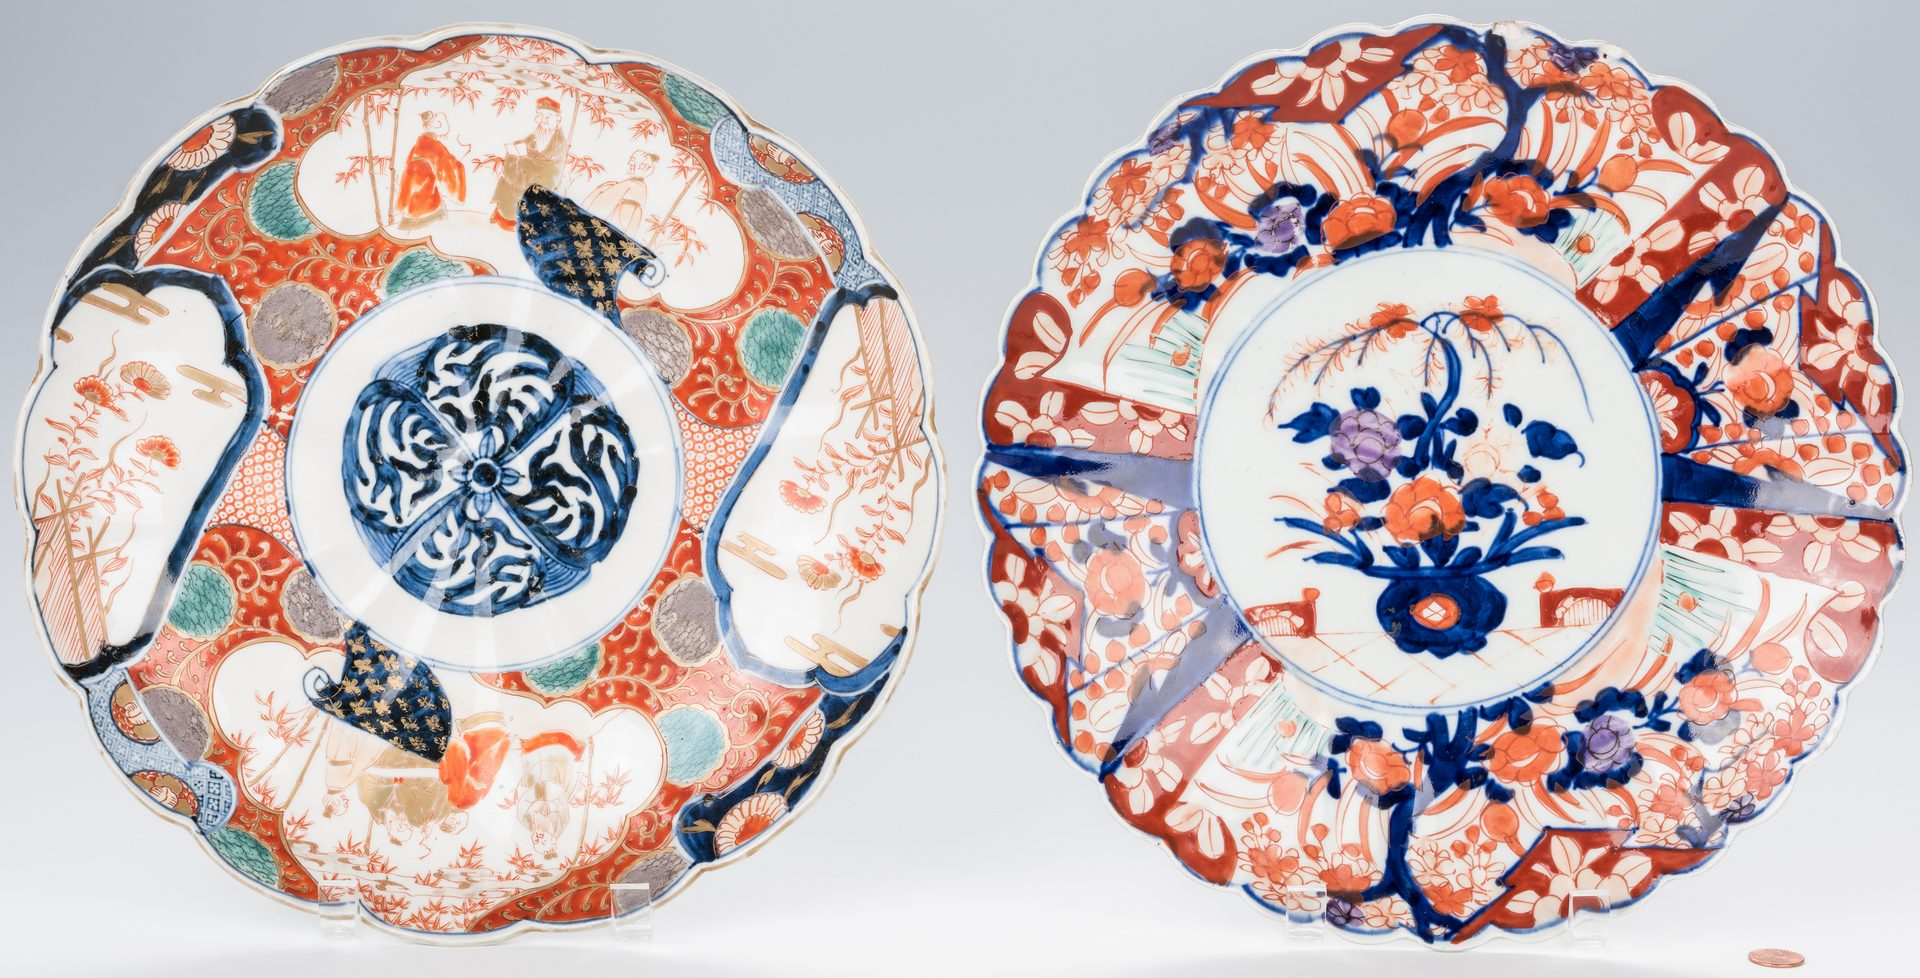 Lot 360: 6 Japanese Imari or Arita Porcelain Chargers